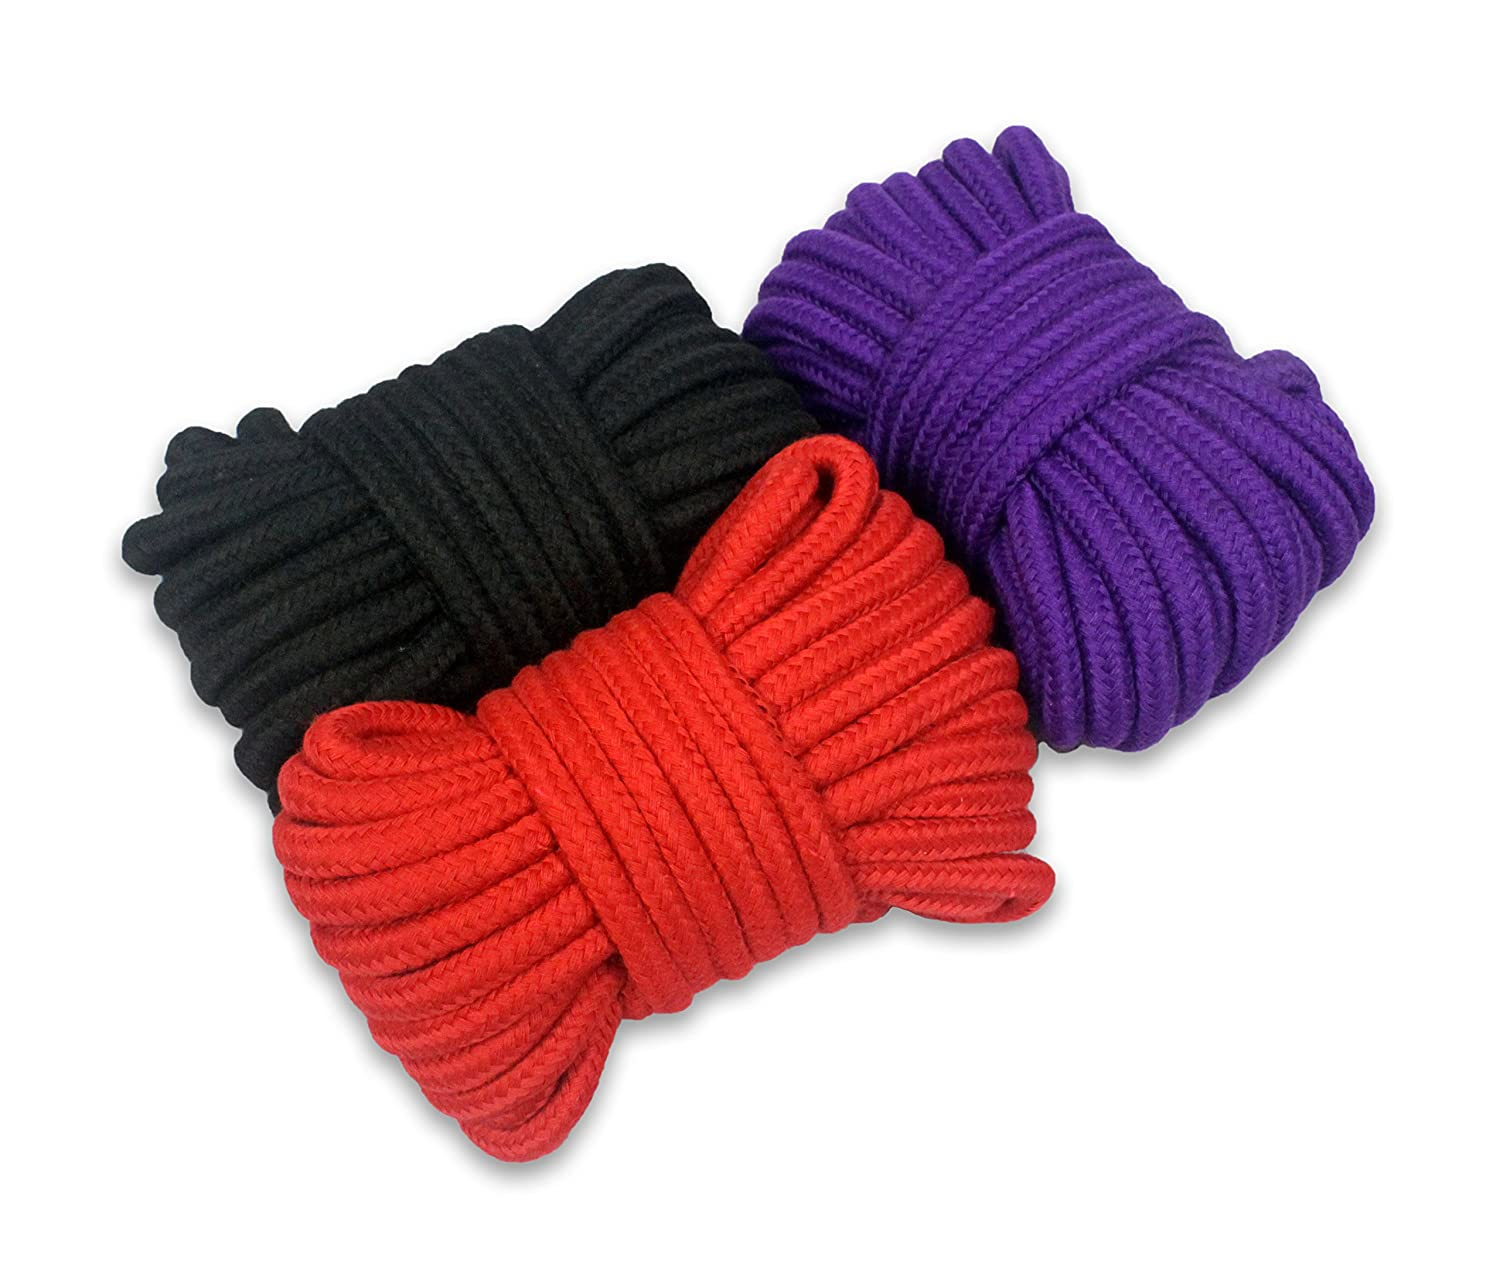 Pack of 3 x 11m Red and Purple Soft Cotton Rope Extra Long All Purpose Knot Tying Natural /& Durable Braided Cotton Black 36 foot